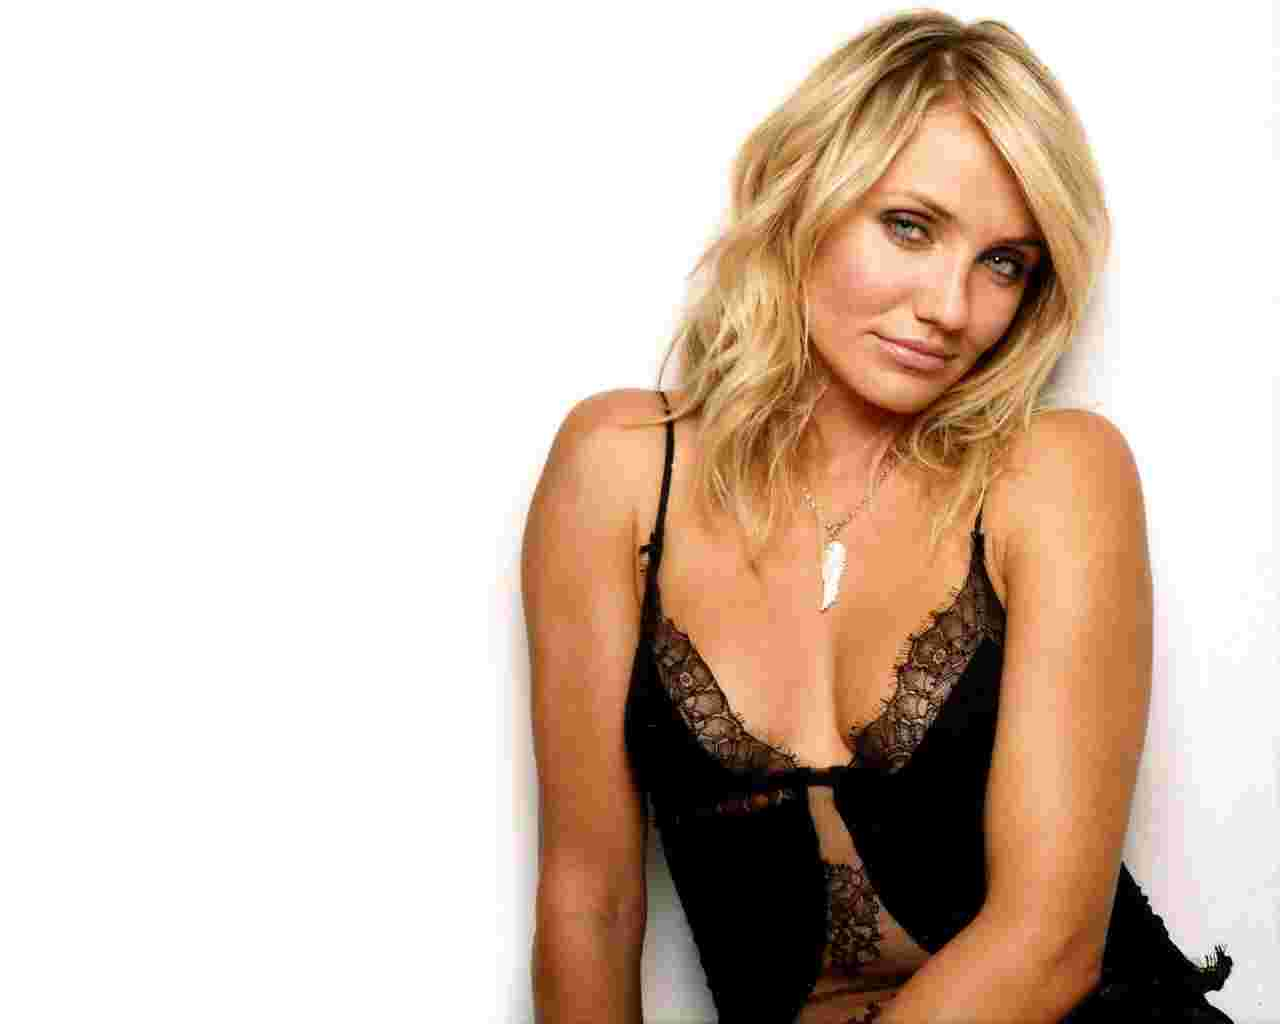 Cameron Diaz 241 wallpaper   Cameron Diaz   Celebrities 1280x1024